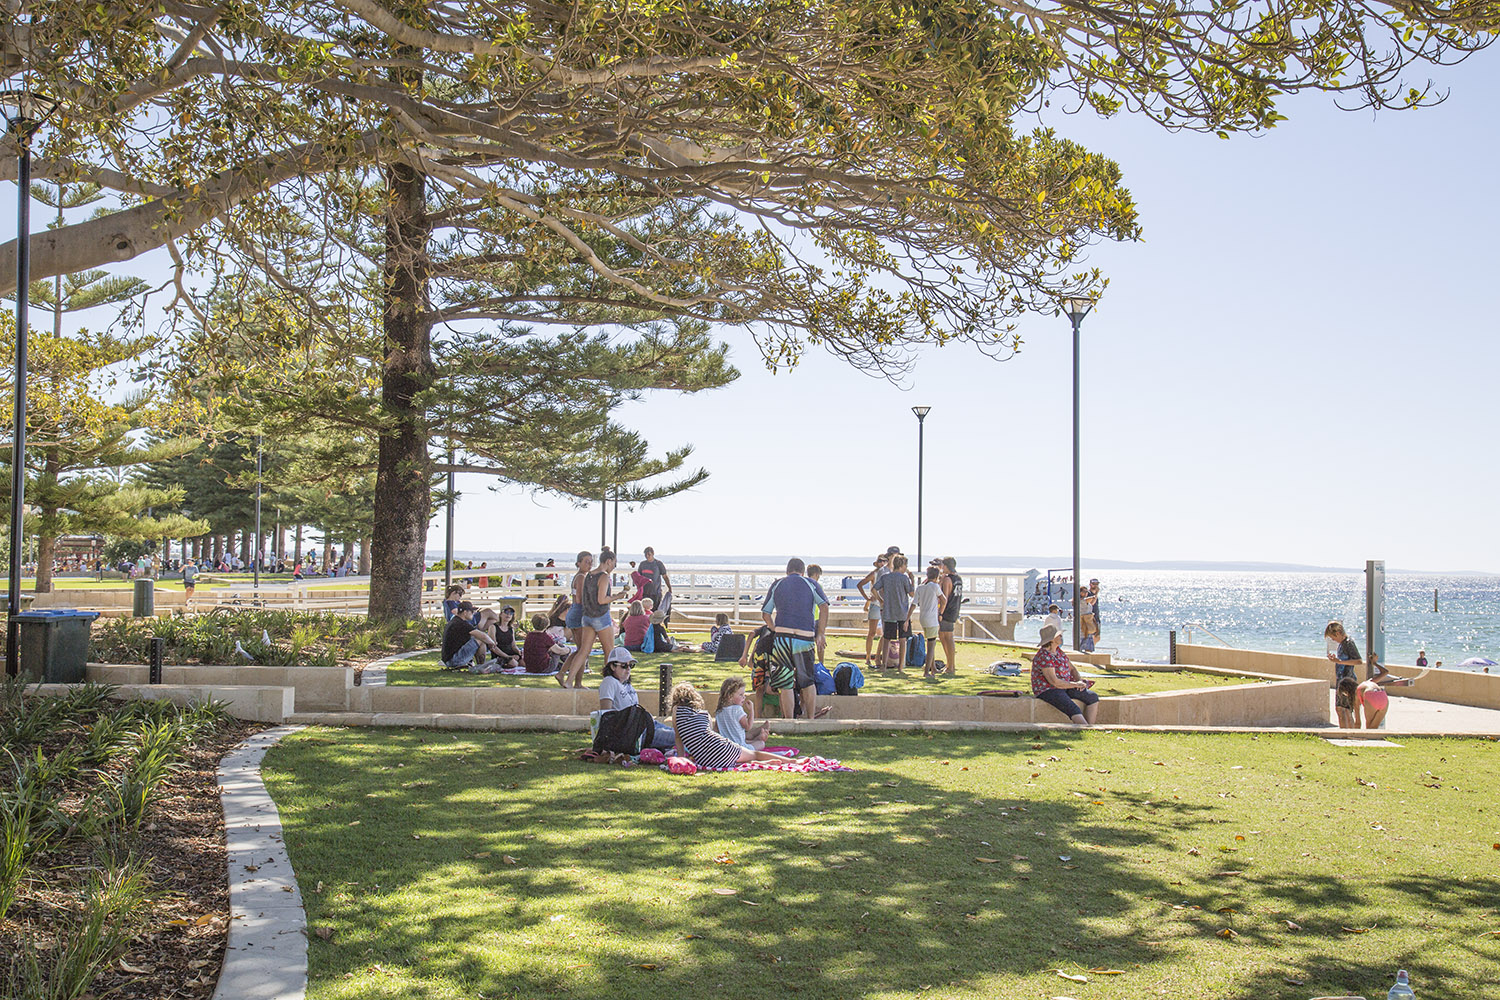 People enjoying their visit to Busselton Waterfront Redevelopment Precint